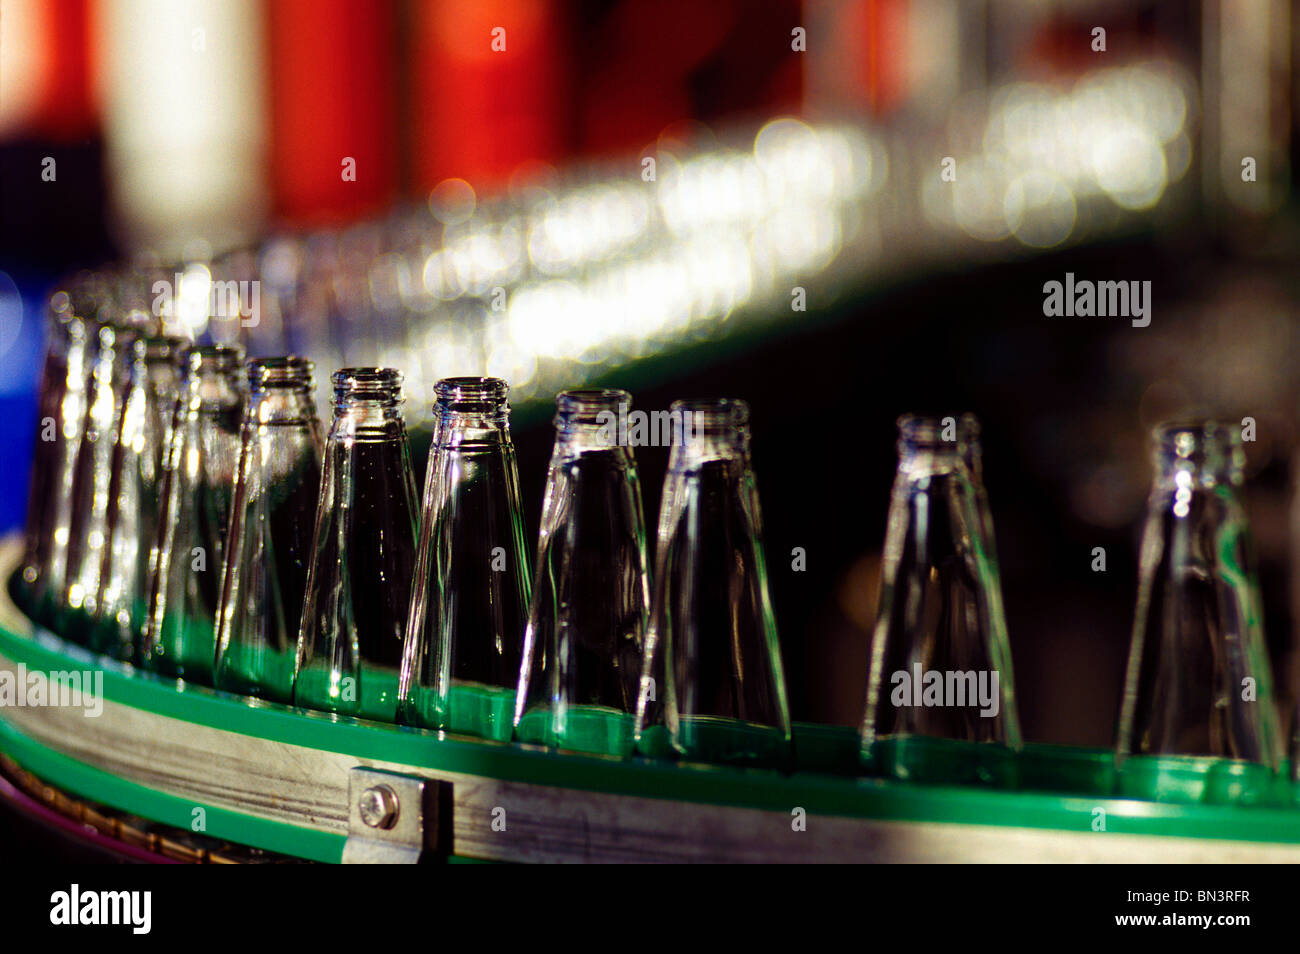 Bottles on production line in manufacturing plant - Stock Image